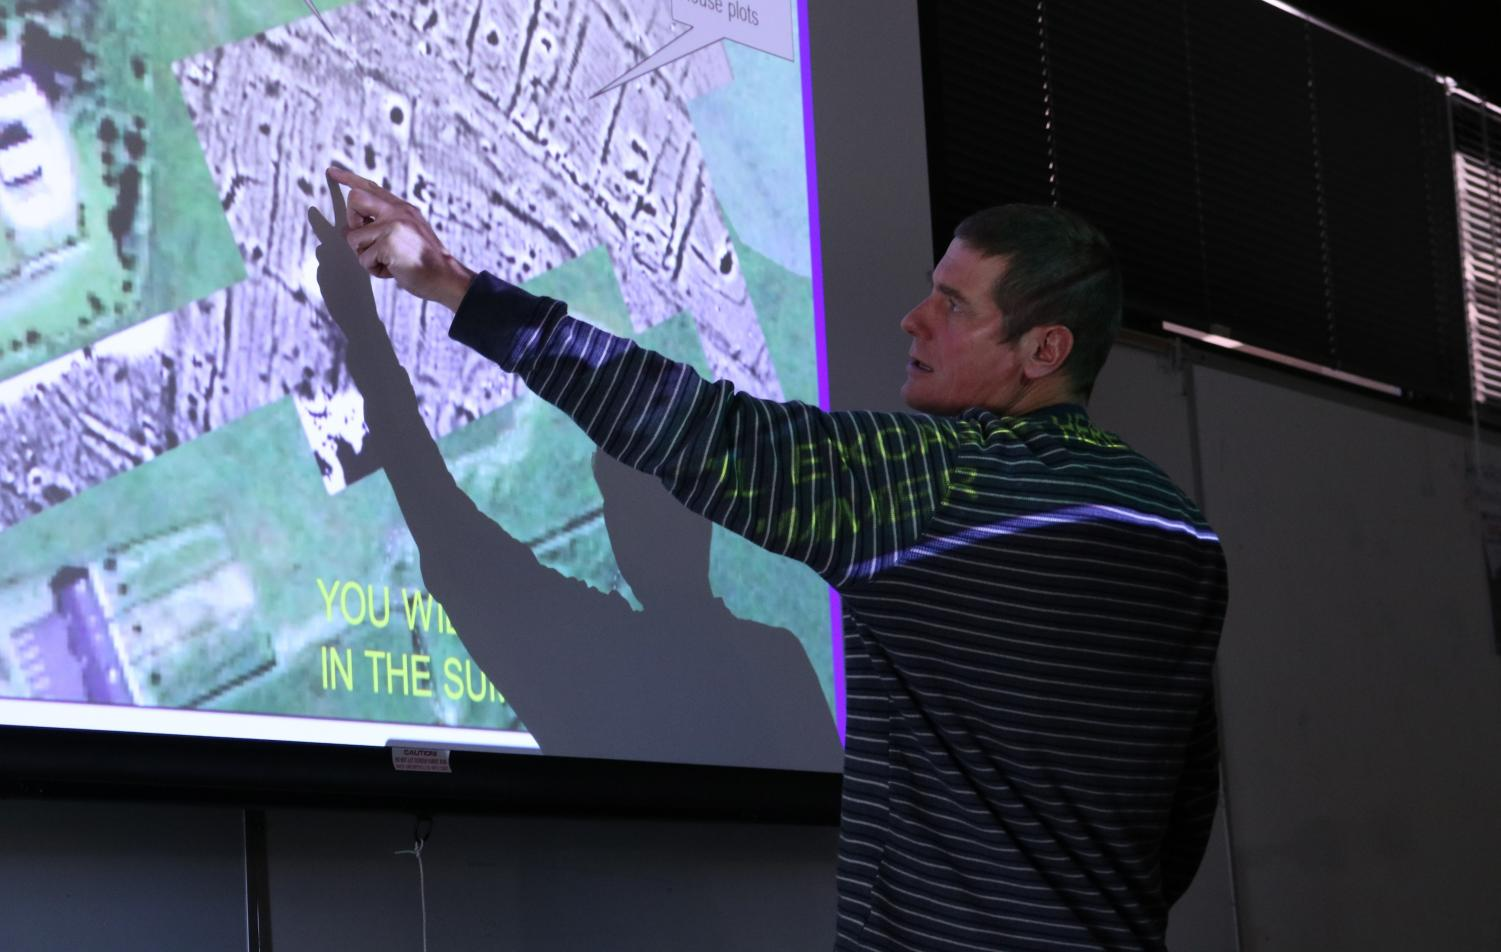 Professor Connell discusses magnetometry of the buried village in Ireland